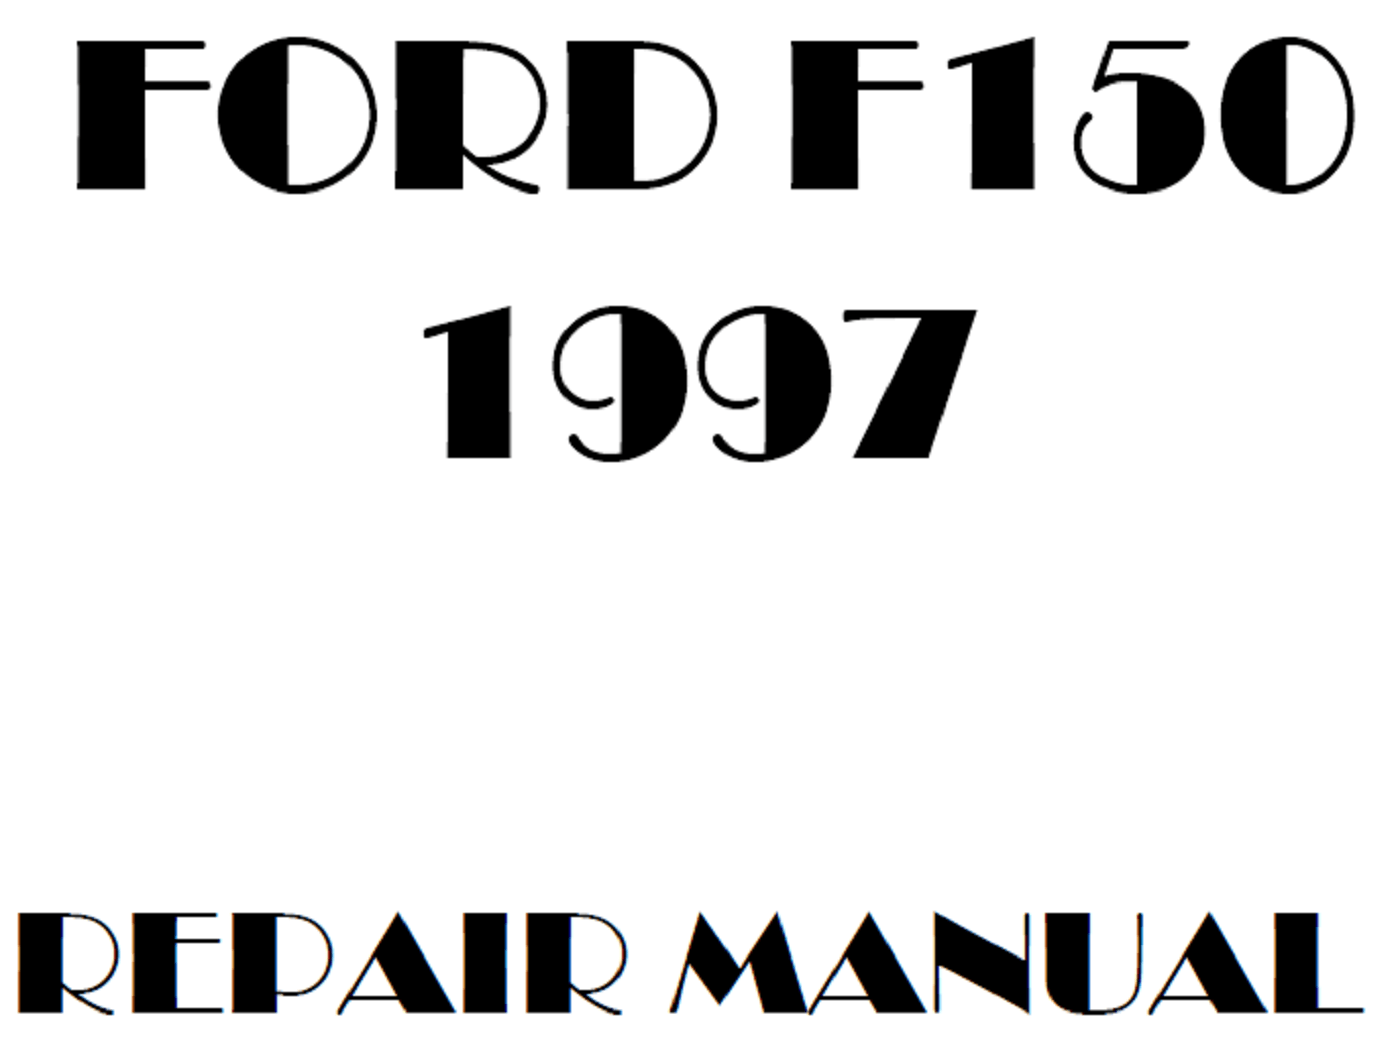 1997 Ford F150 repair manual